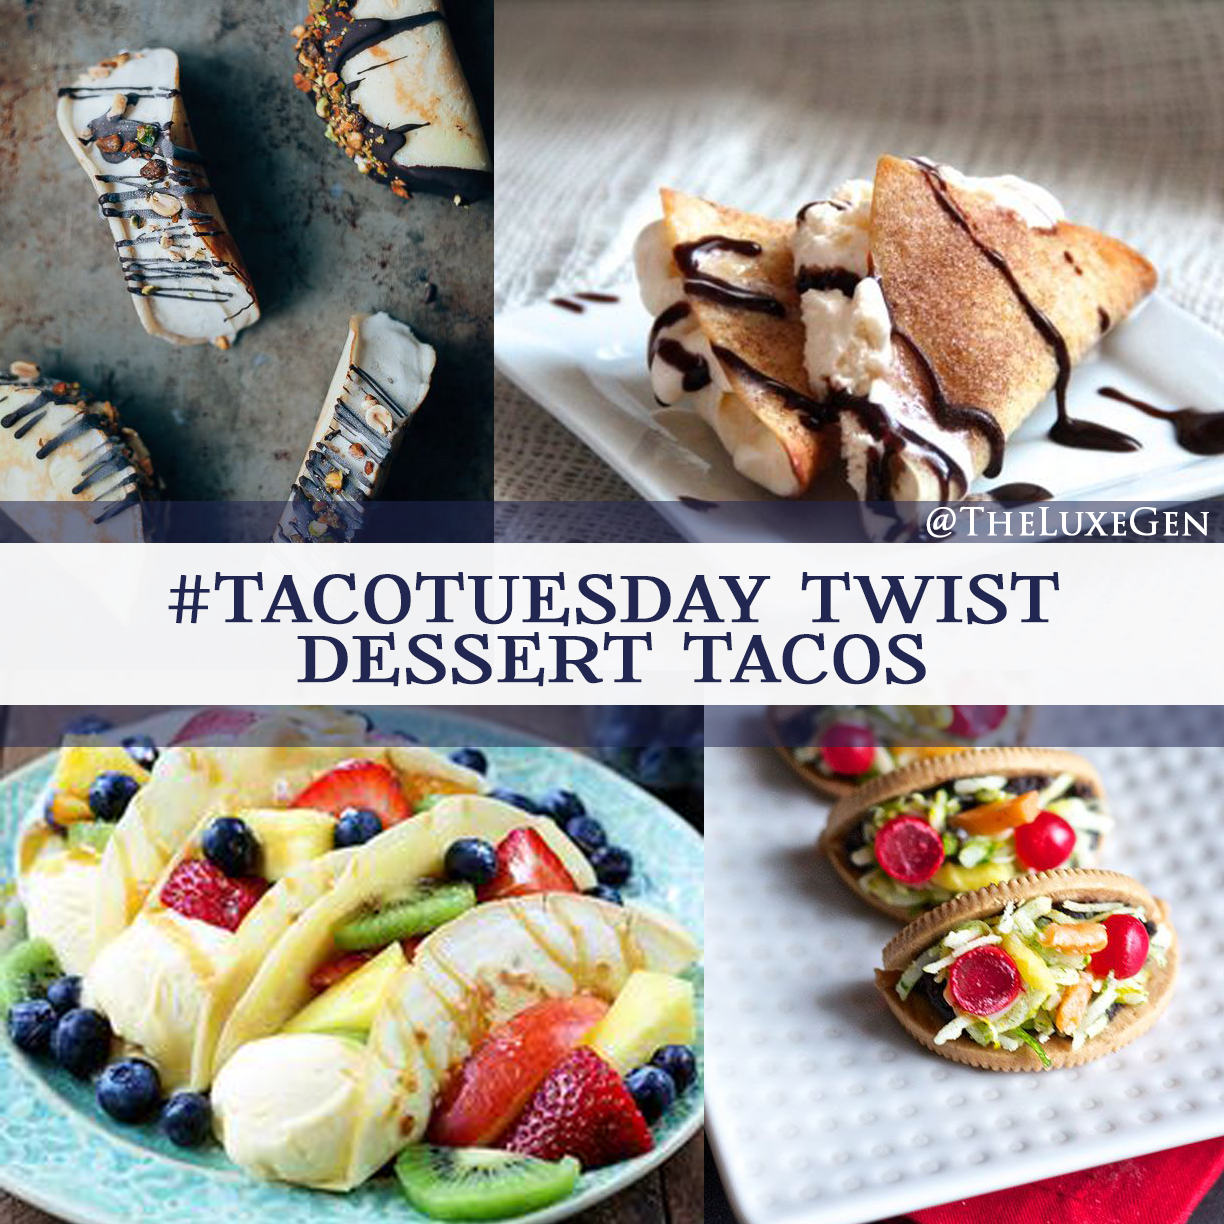 taco tuesday, recipes, dessert tacos, national taco day